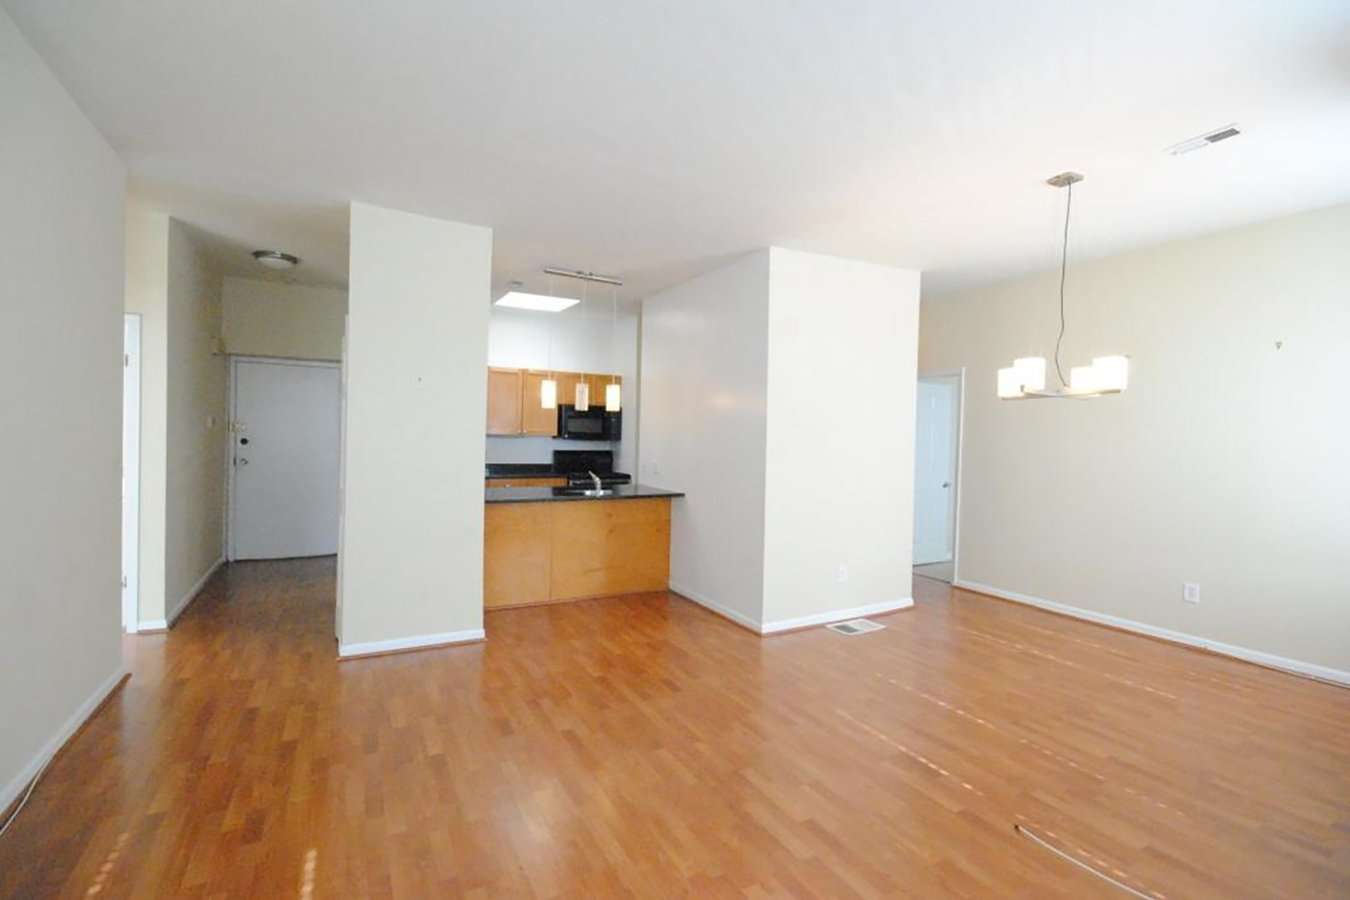 2 Bedrooms 1 Bathroom Apartment for rent at Landesman in St Louis, MO